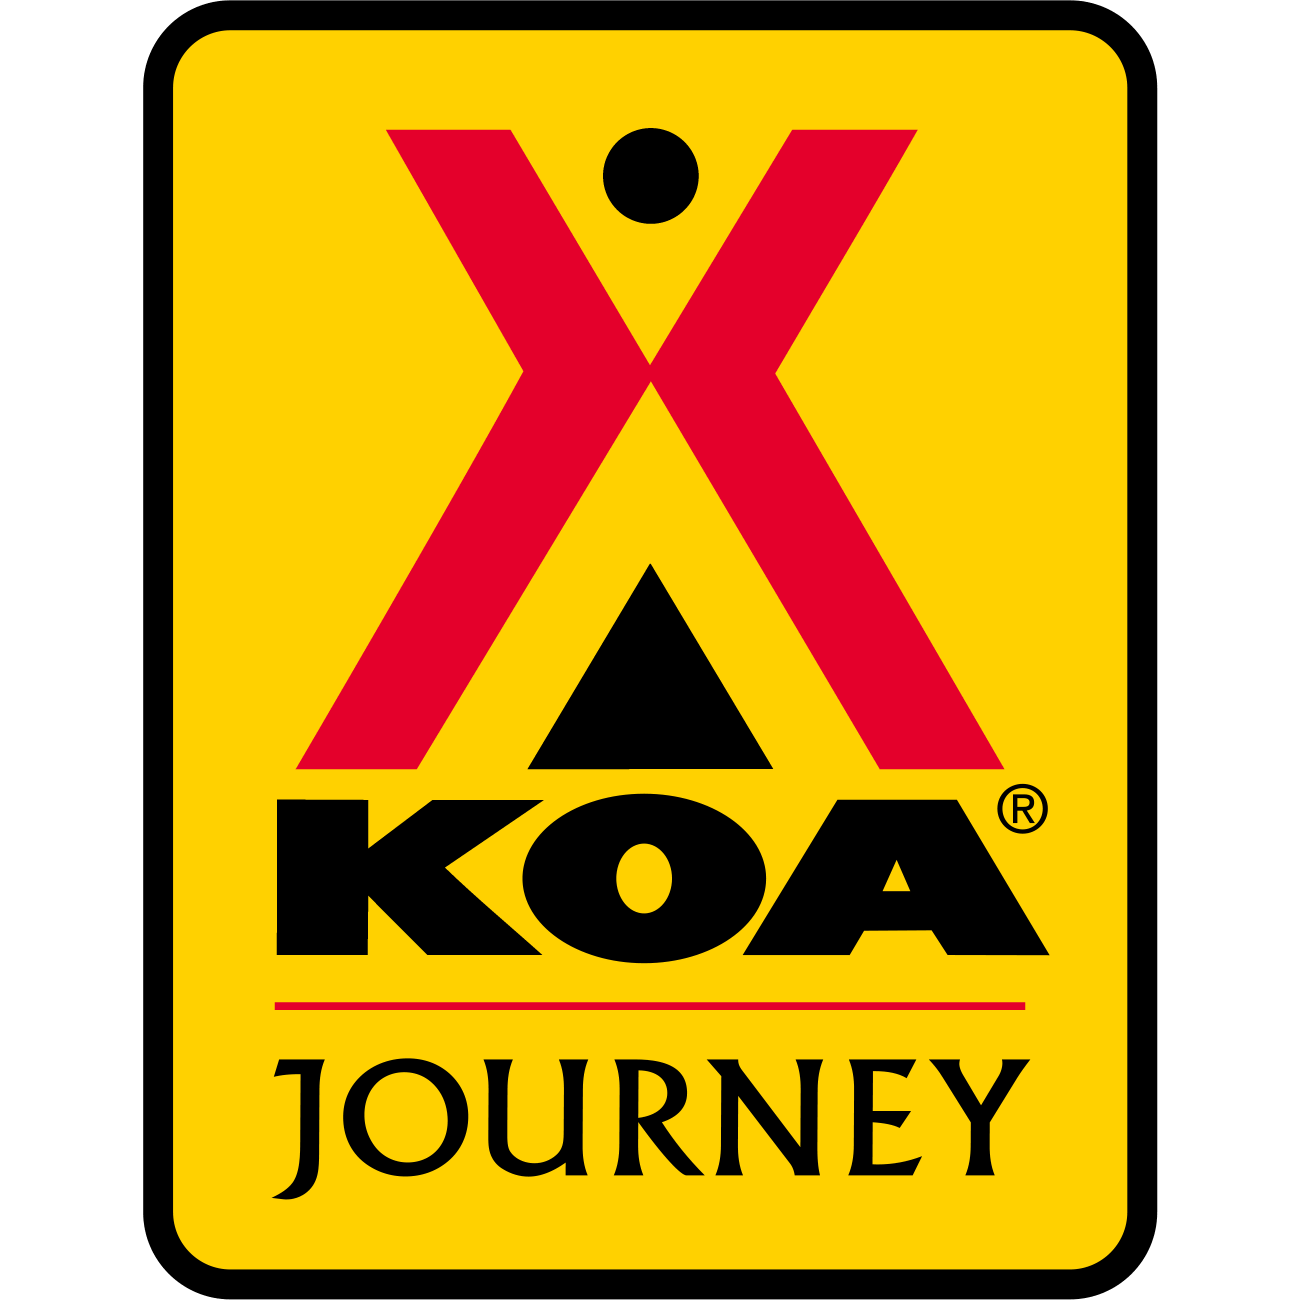 Las Cruces KOA Journey image 27